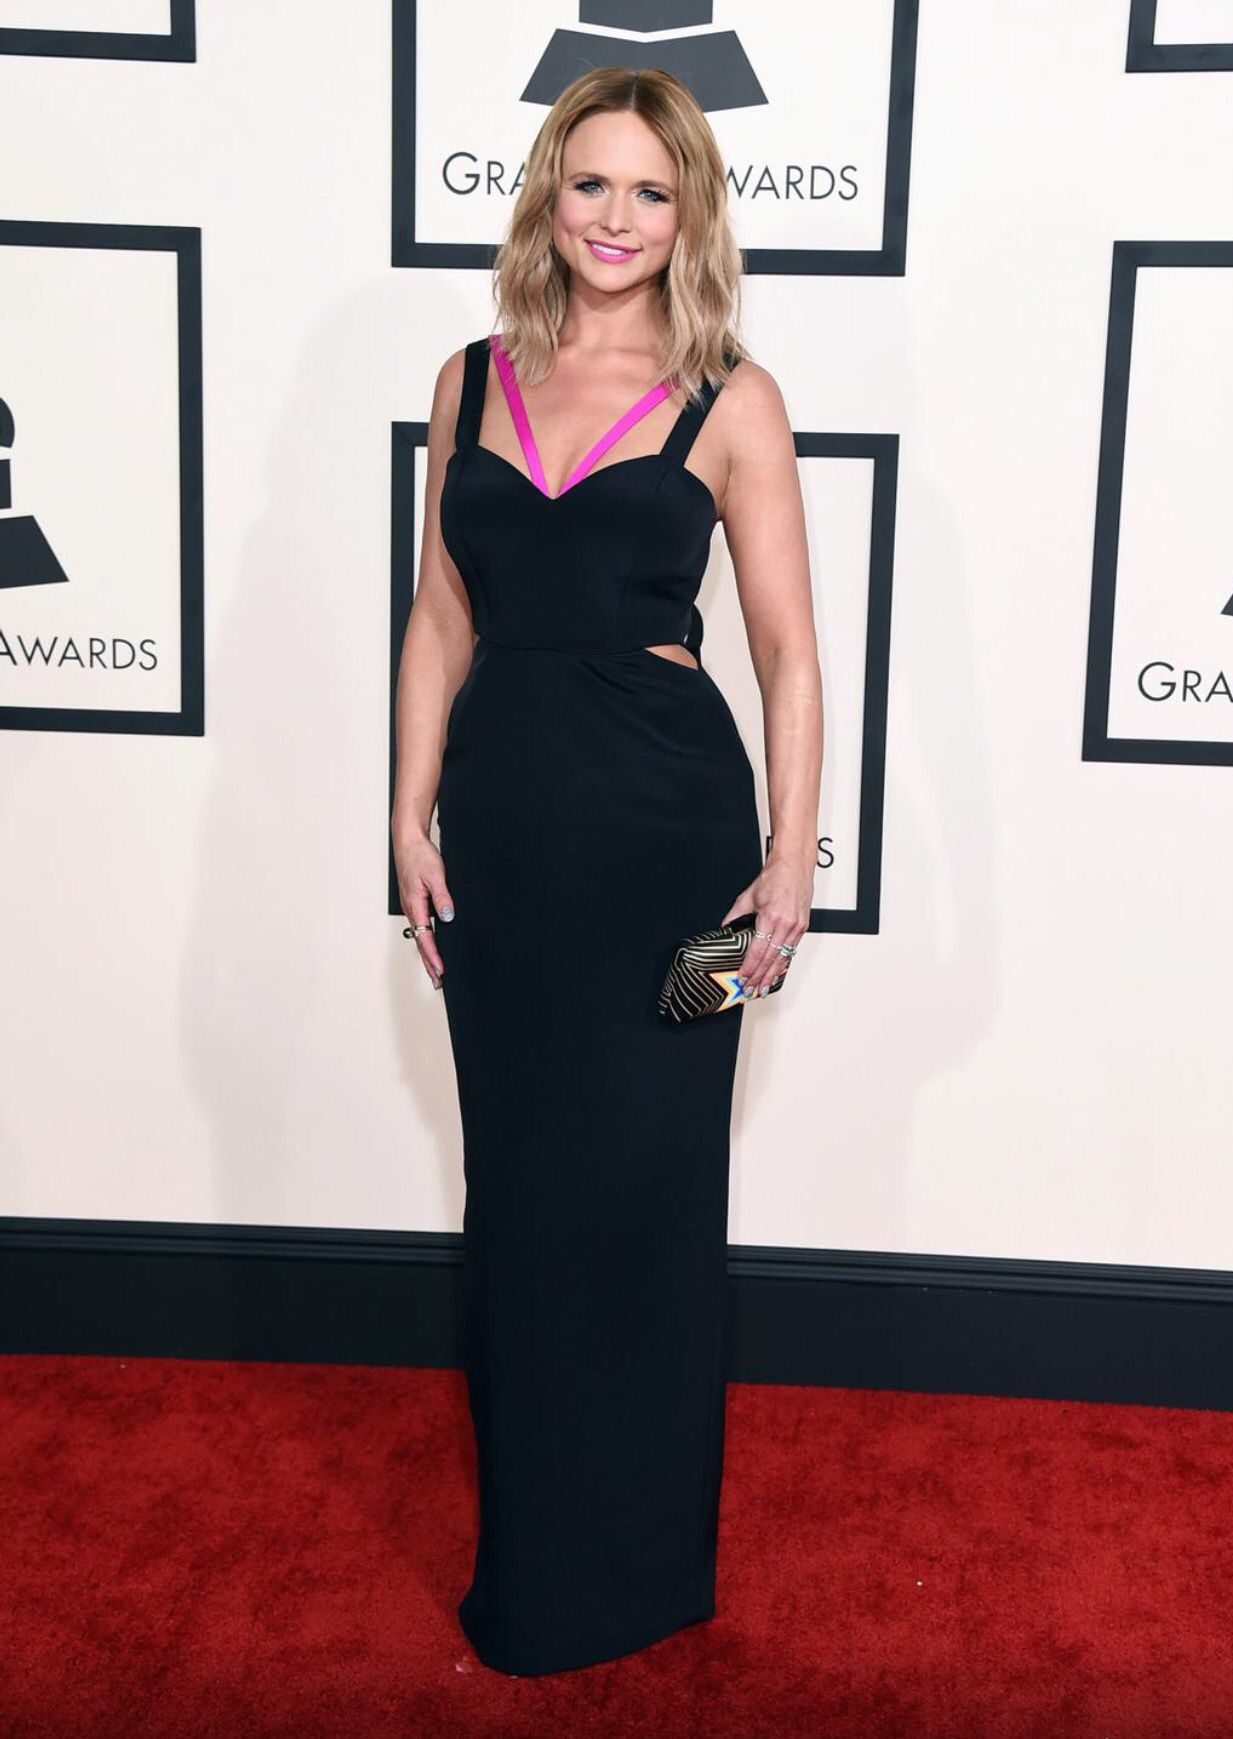 Roter Teppich 2015 Miranda Lambert Grammys 2015 In Gabriela Cadena Passion For Fashion